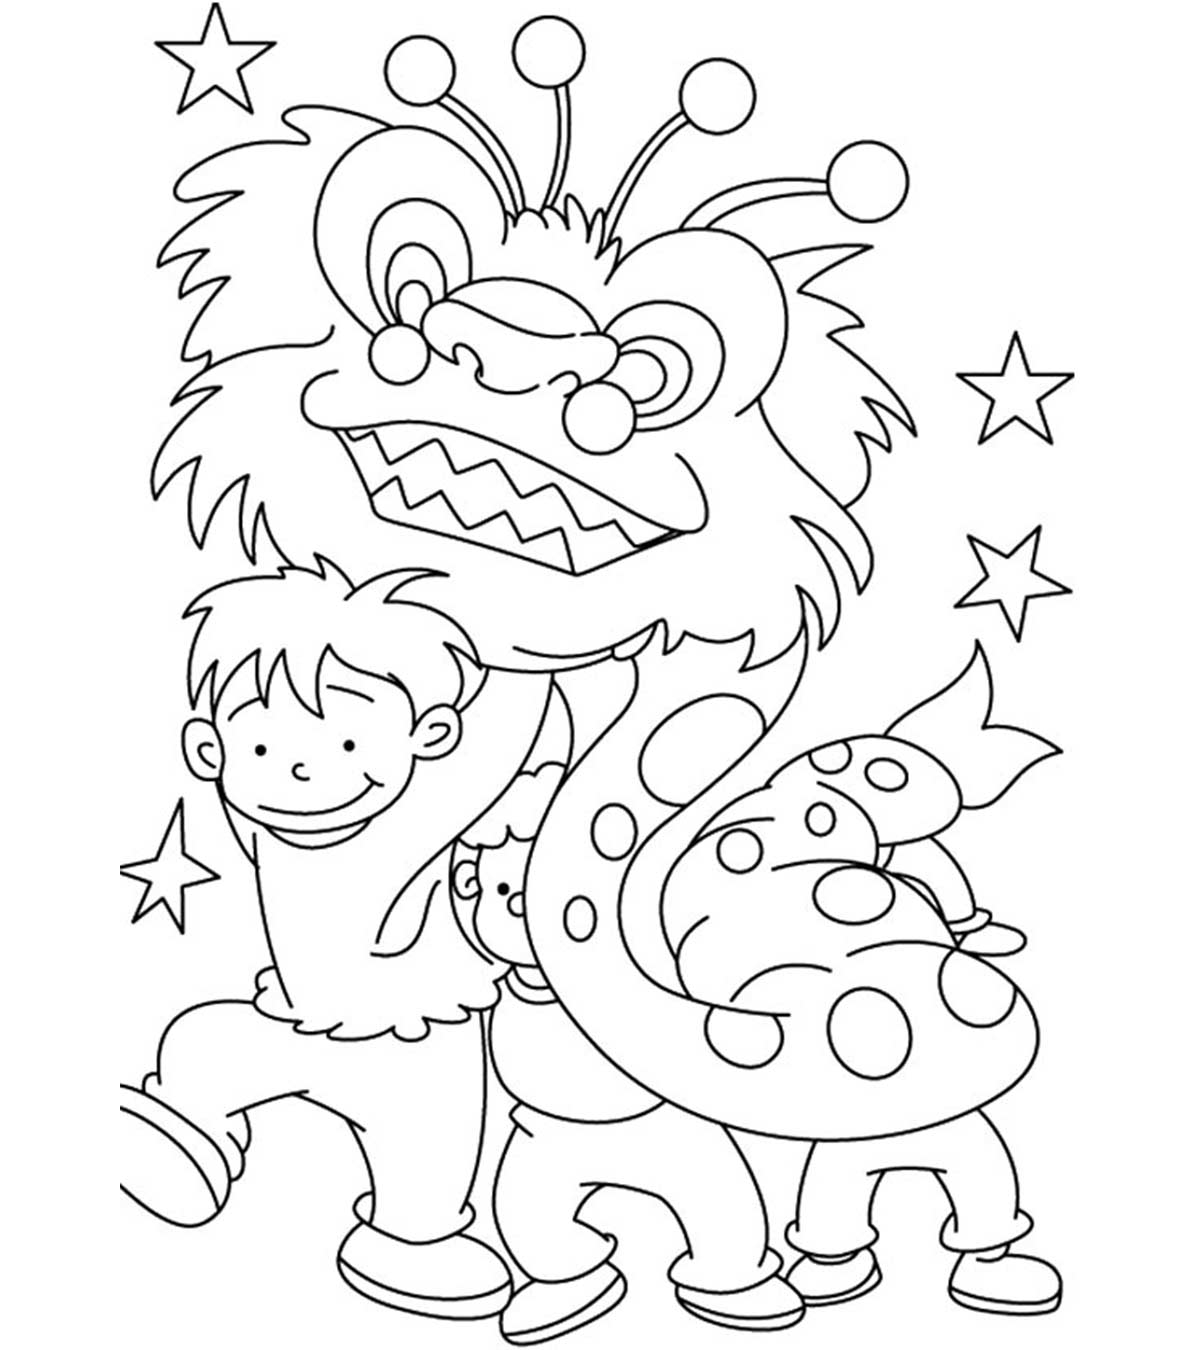 chinese new year coloring pages 2020 chinese new year 2020 coloring pages and activities year coloring pages chinese year 2020 new